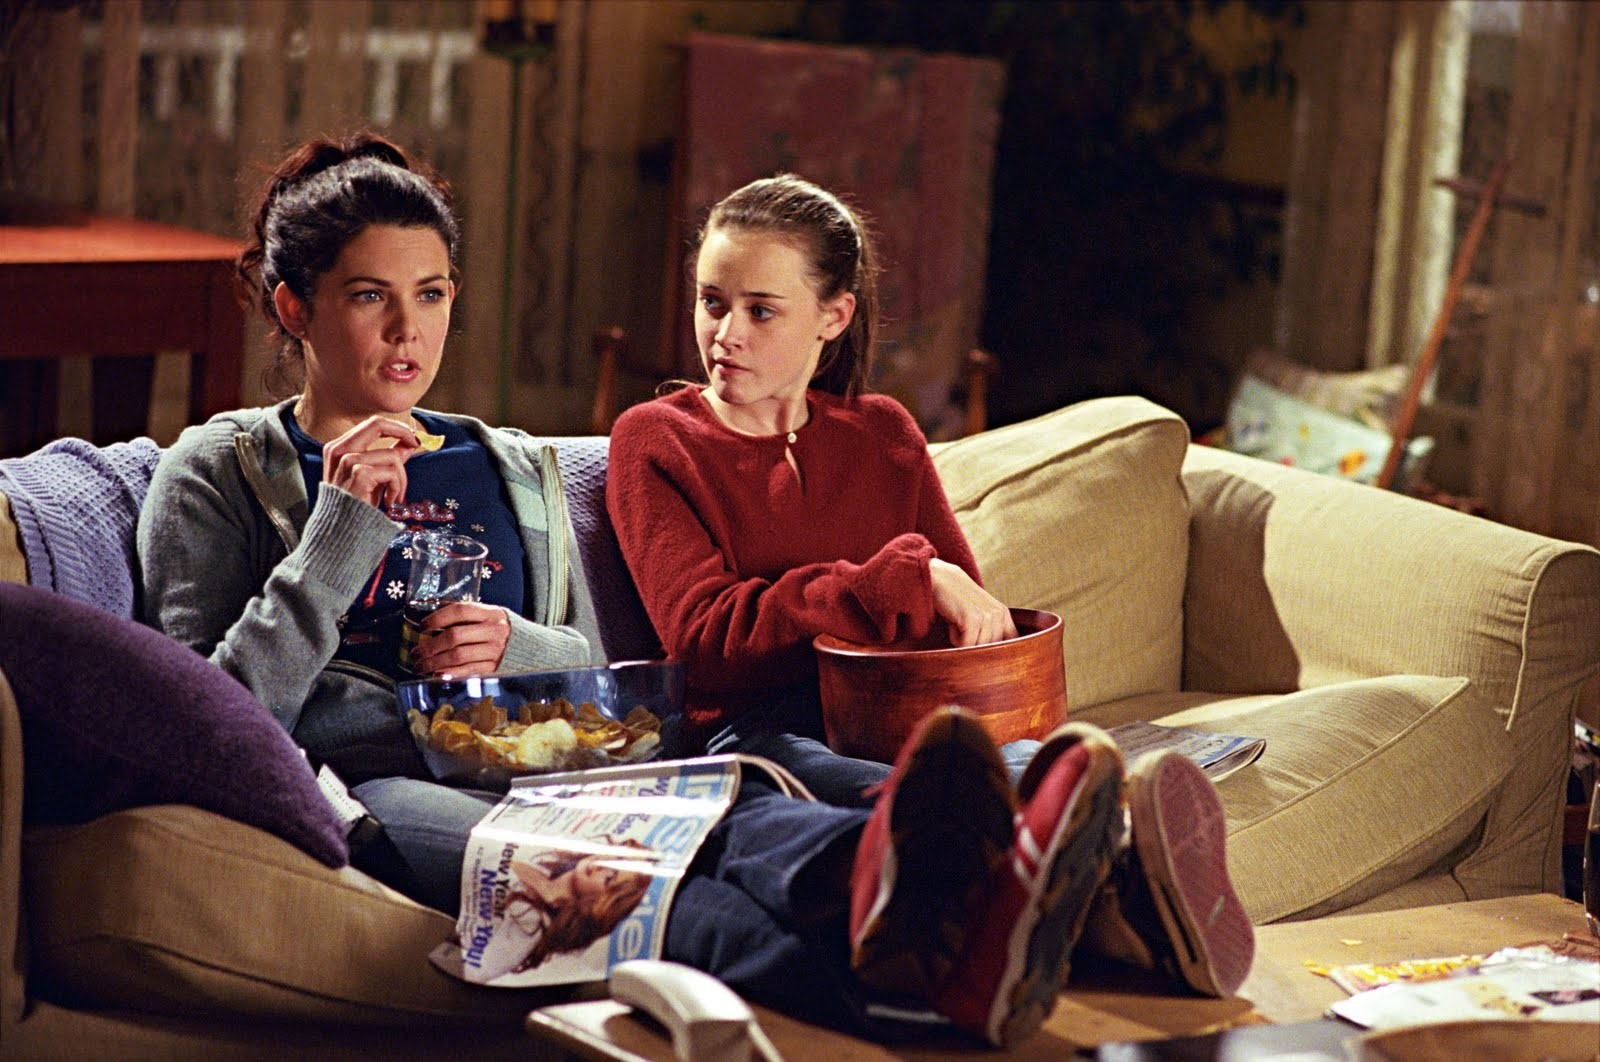 Best films and TV shows to watch over the holidays